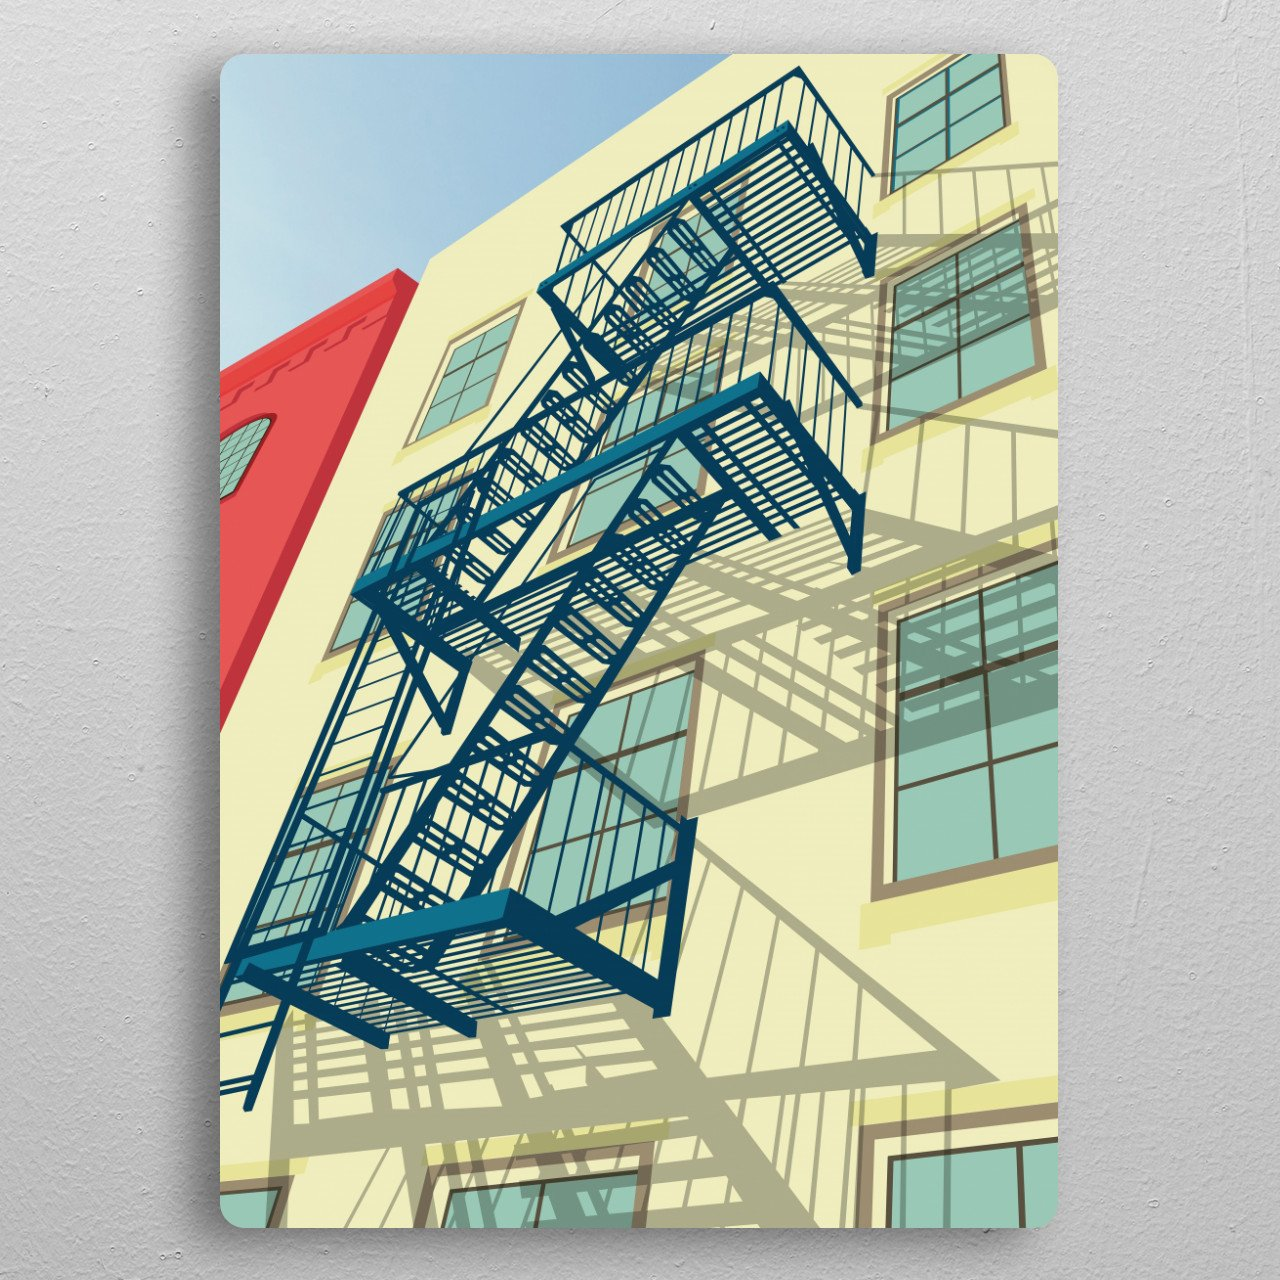 Greenwich village NYC pocket-size metal print from Black box